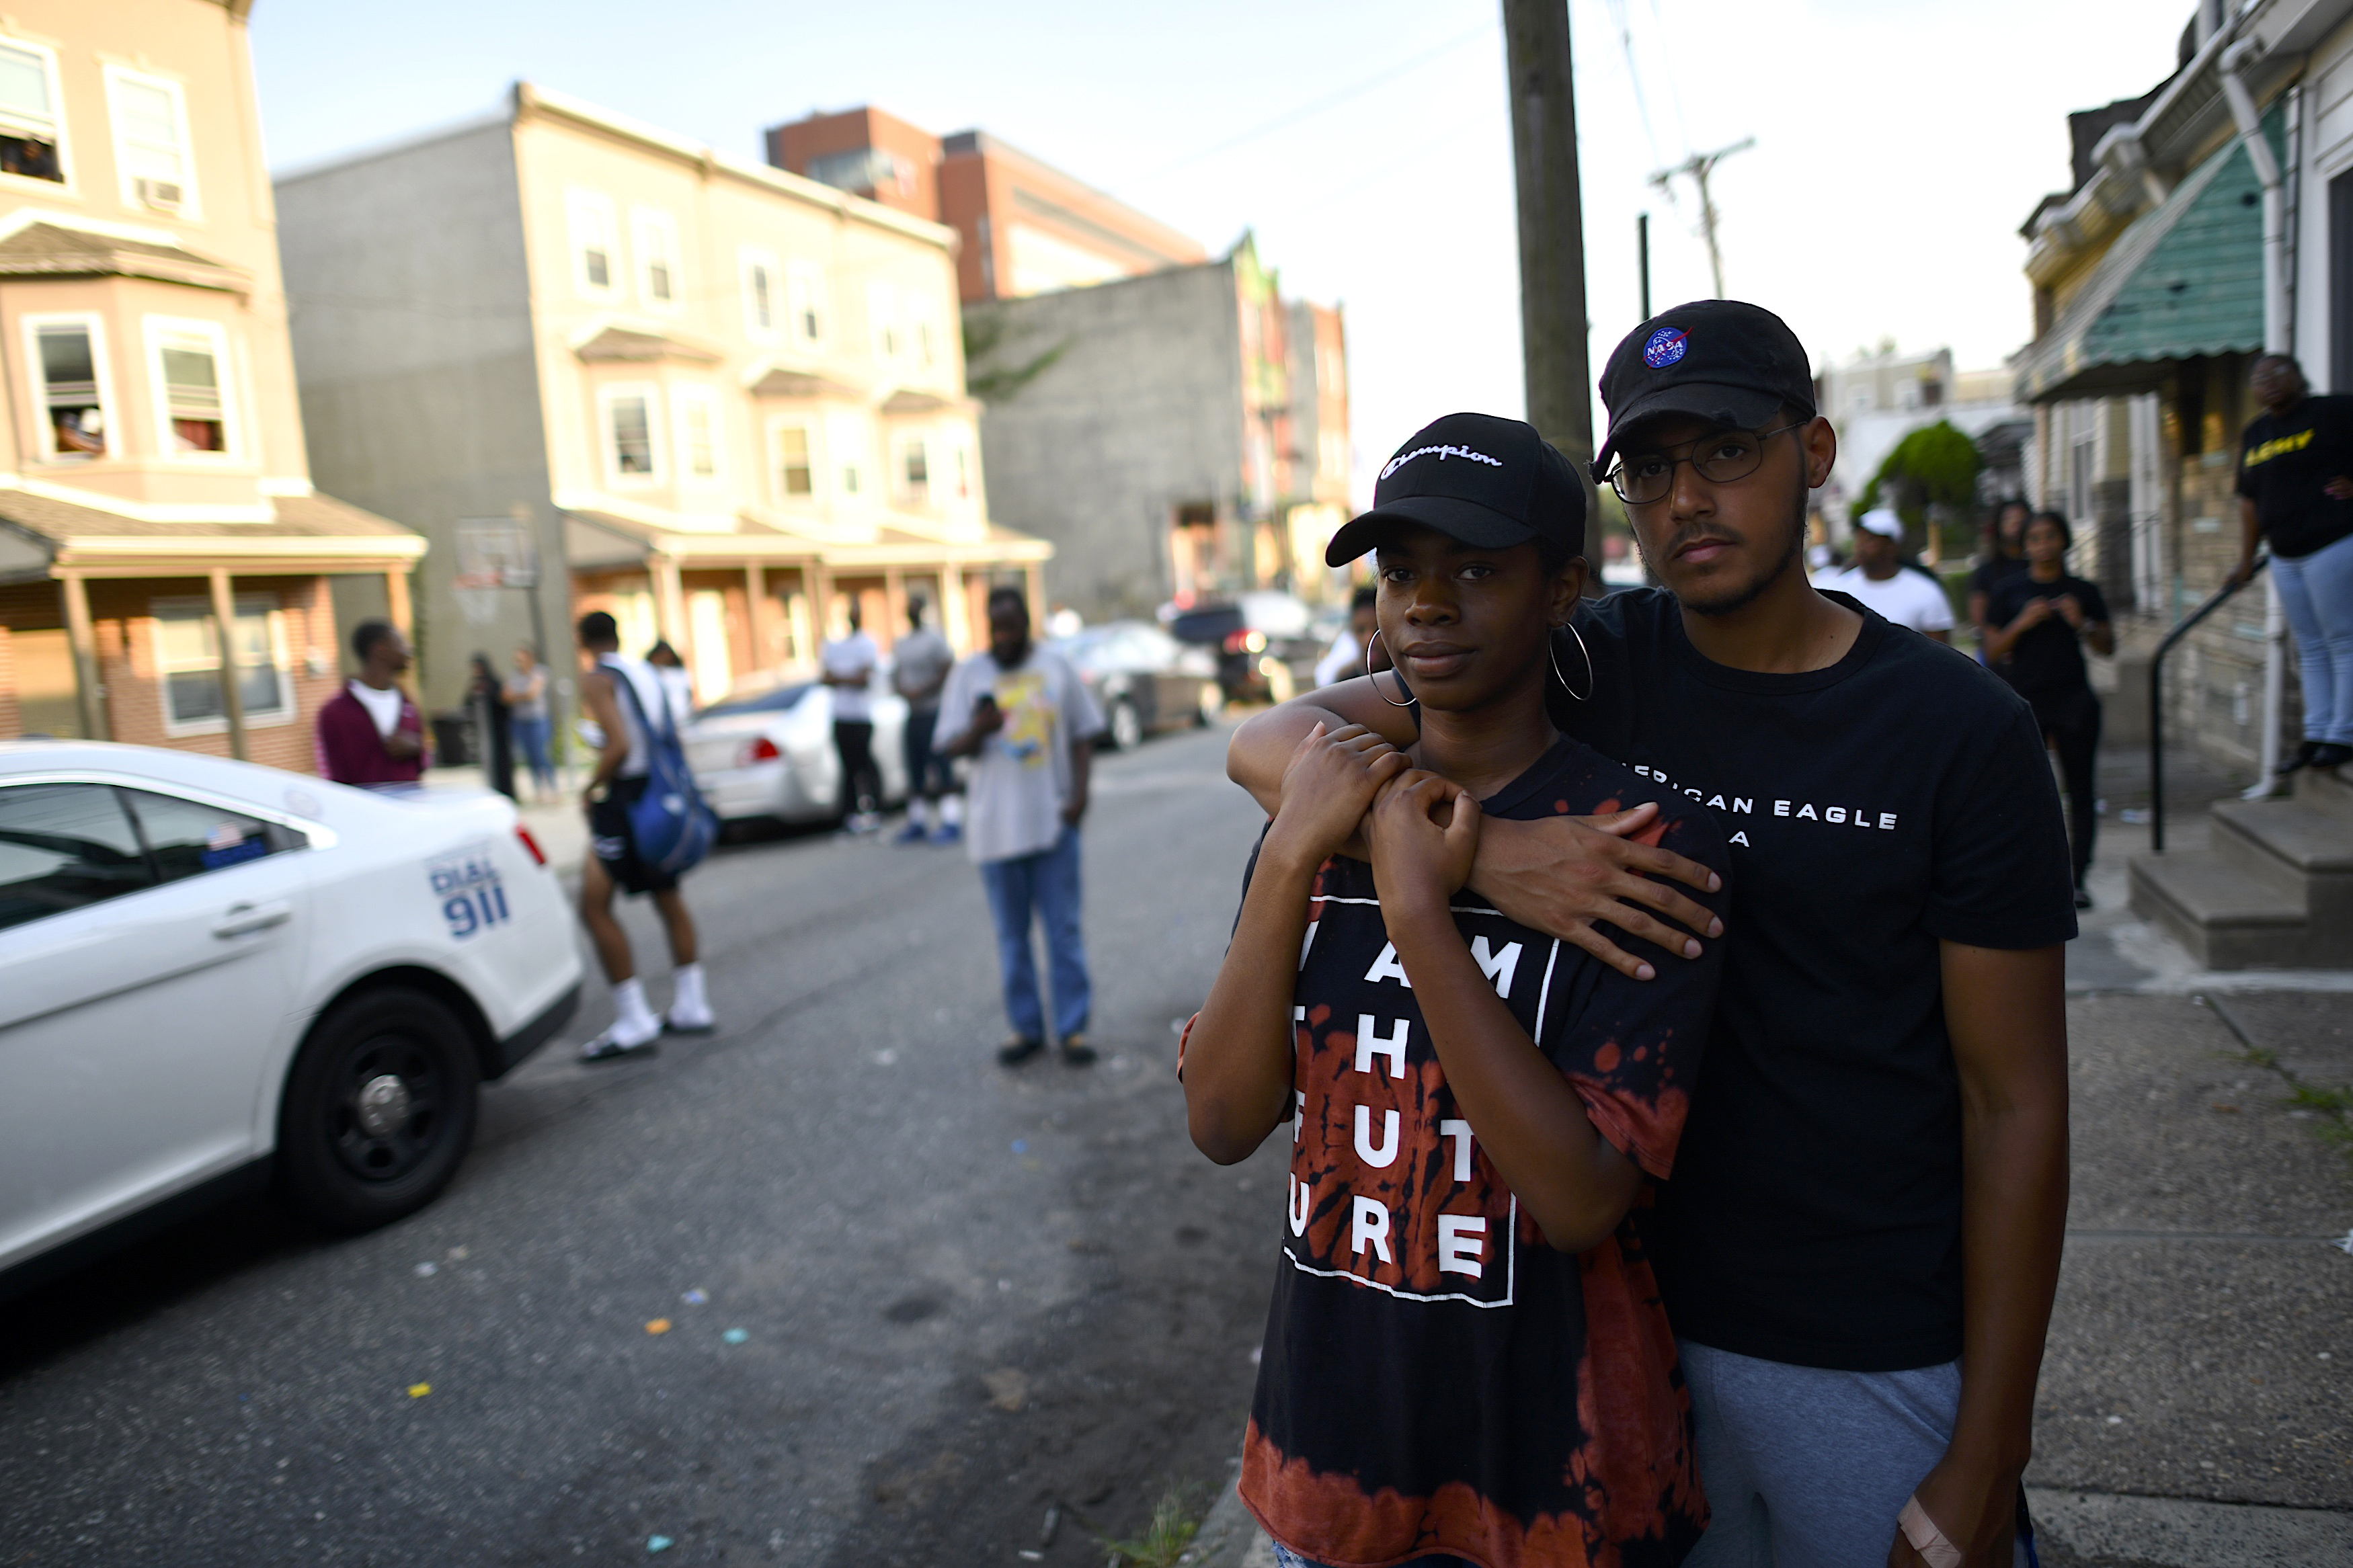 Onlookers gather near the scene of a shooting on August 14, 2019 in Philadelphia.